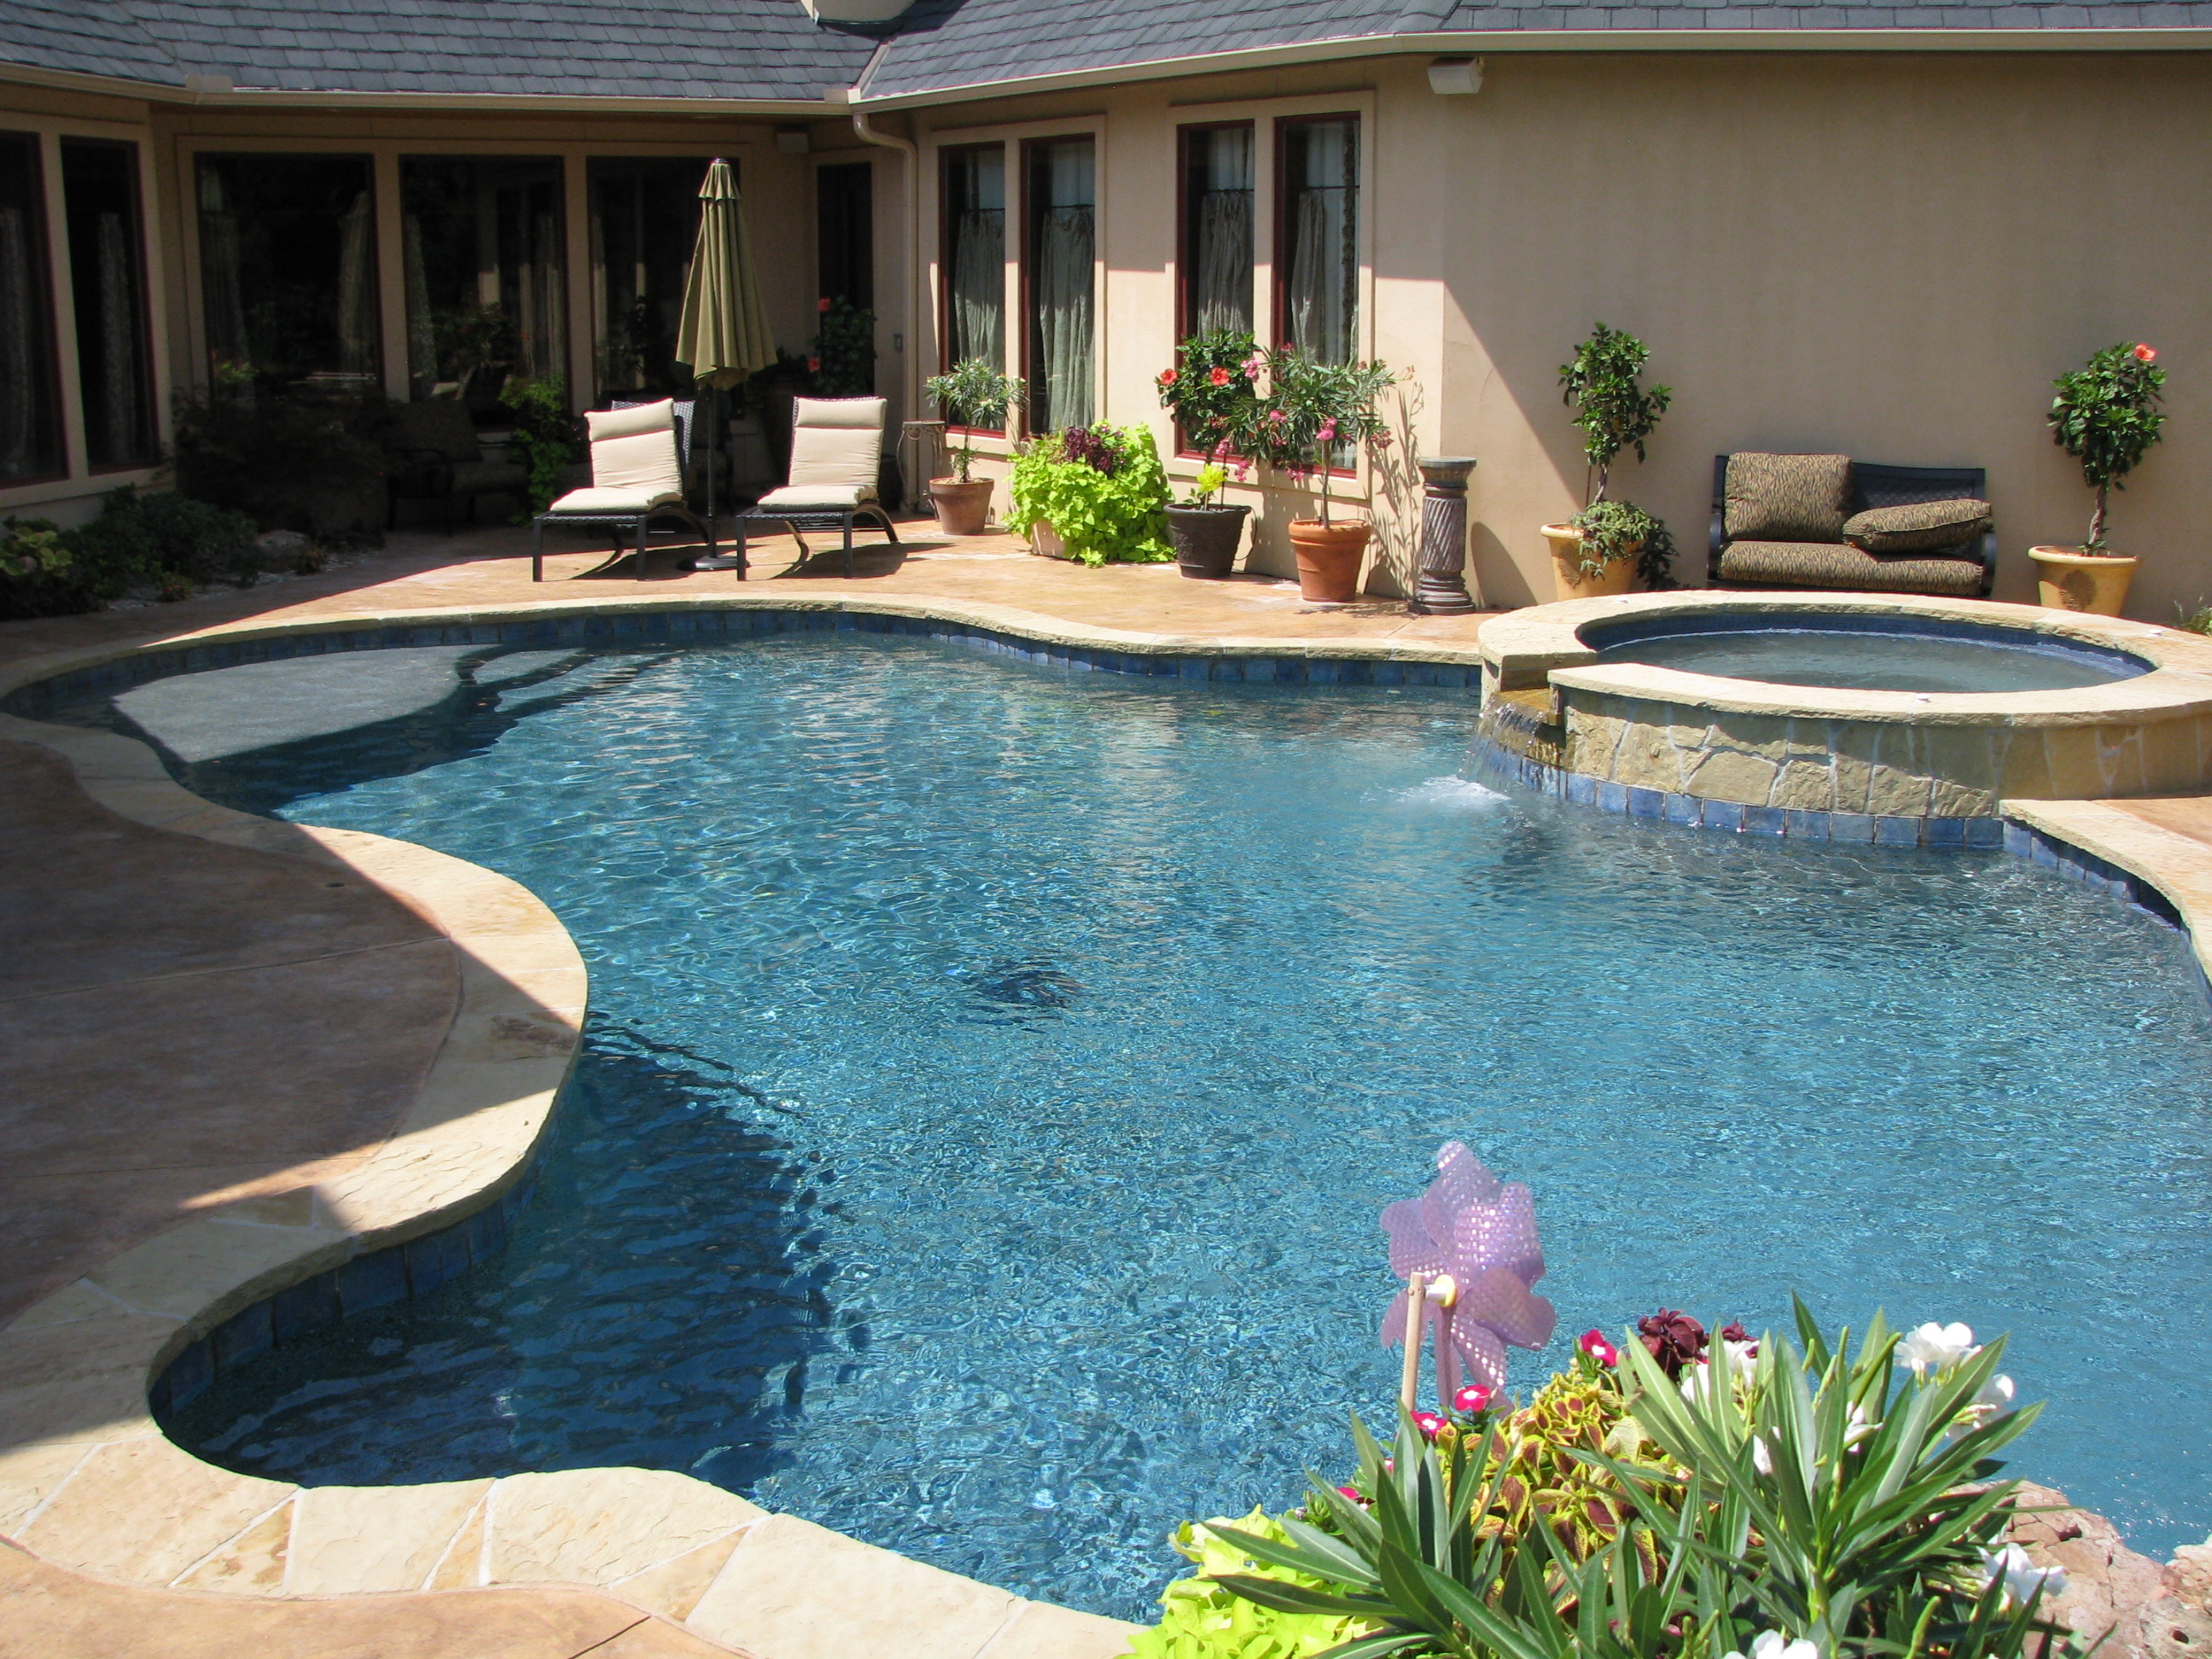 Free form pools blue haven pools tulsa Hot tubs tulsa